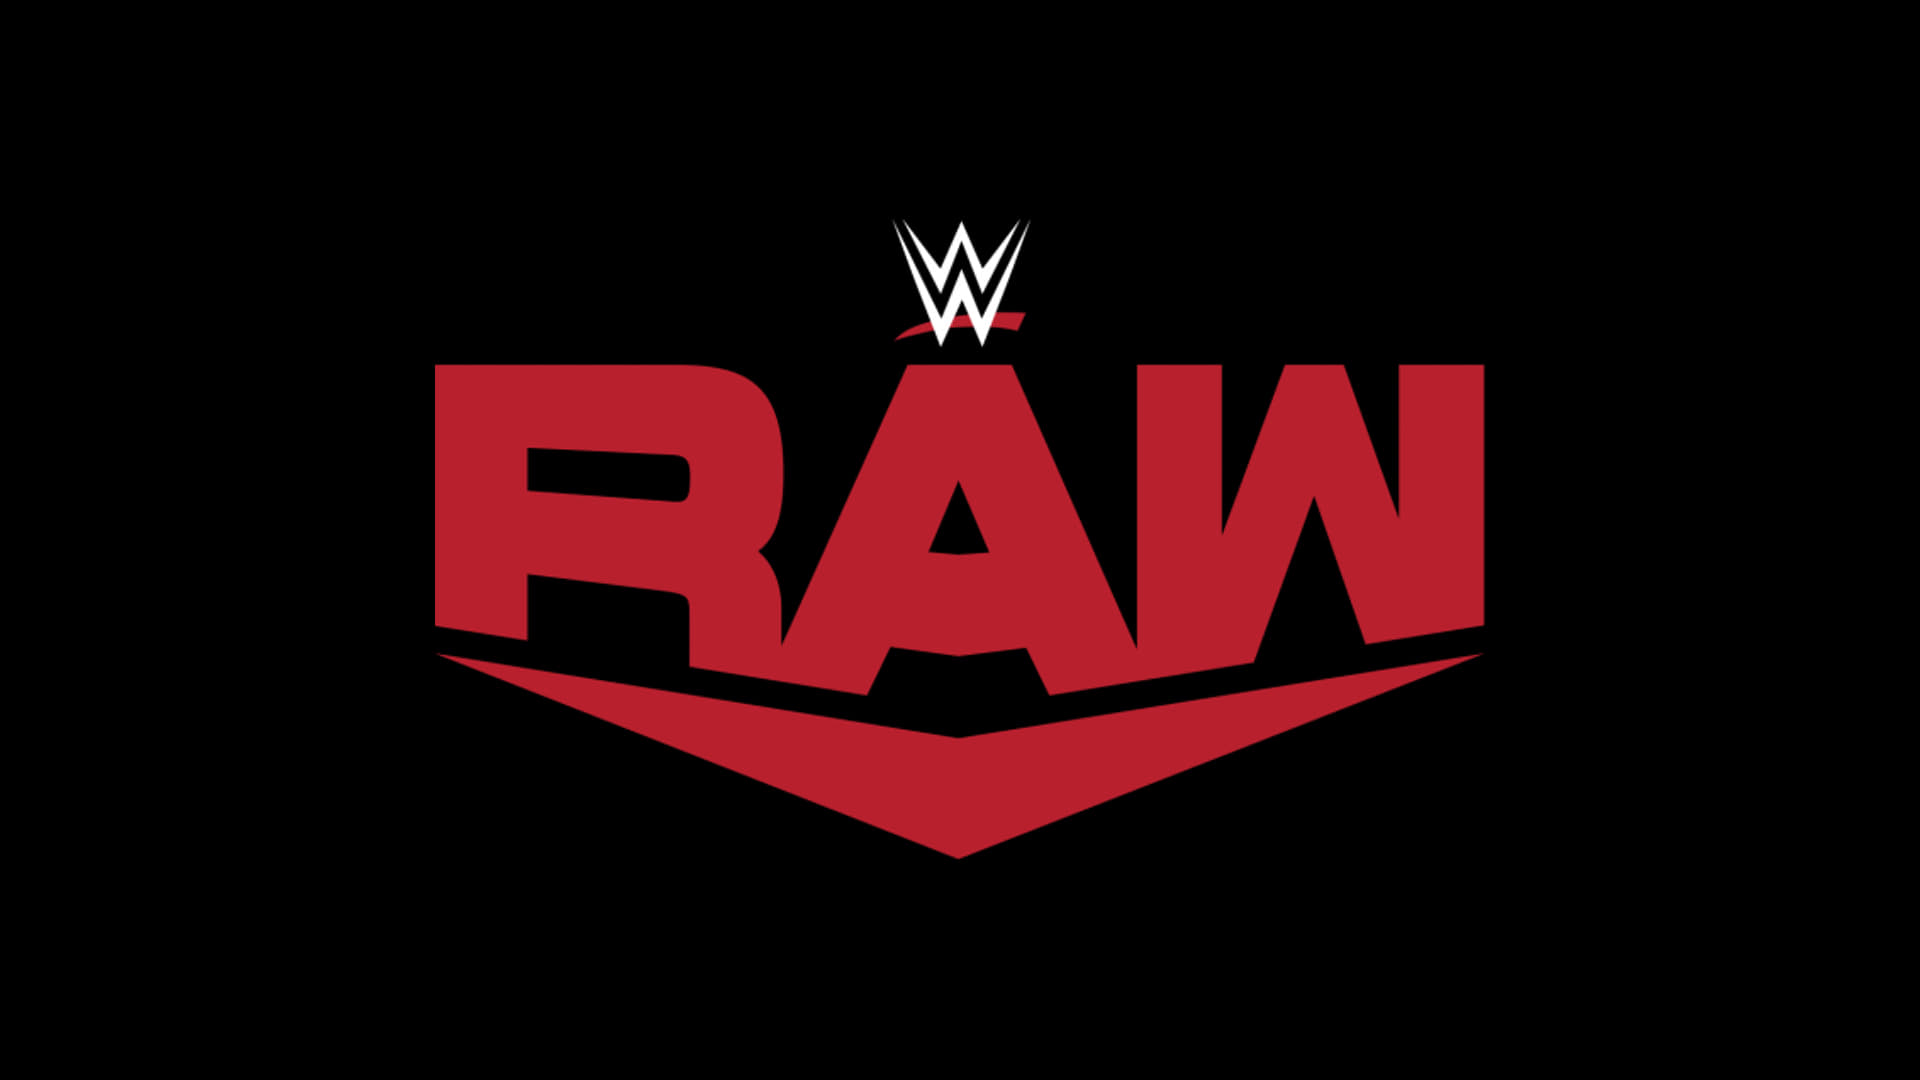 WWE Raw - Season 23 Episode 35 : August 31, 2015 (Tampa, FL)